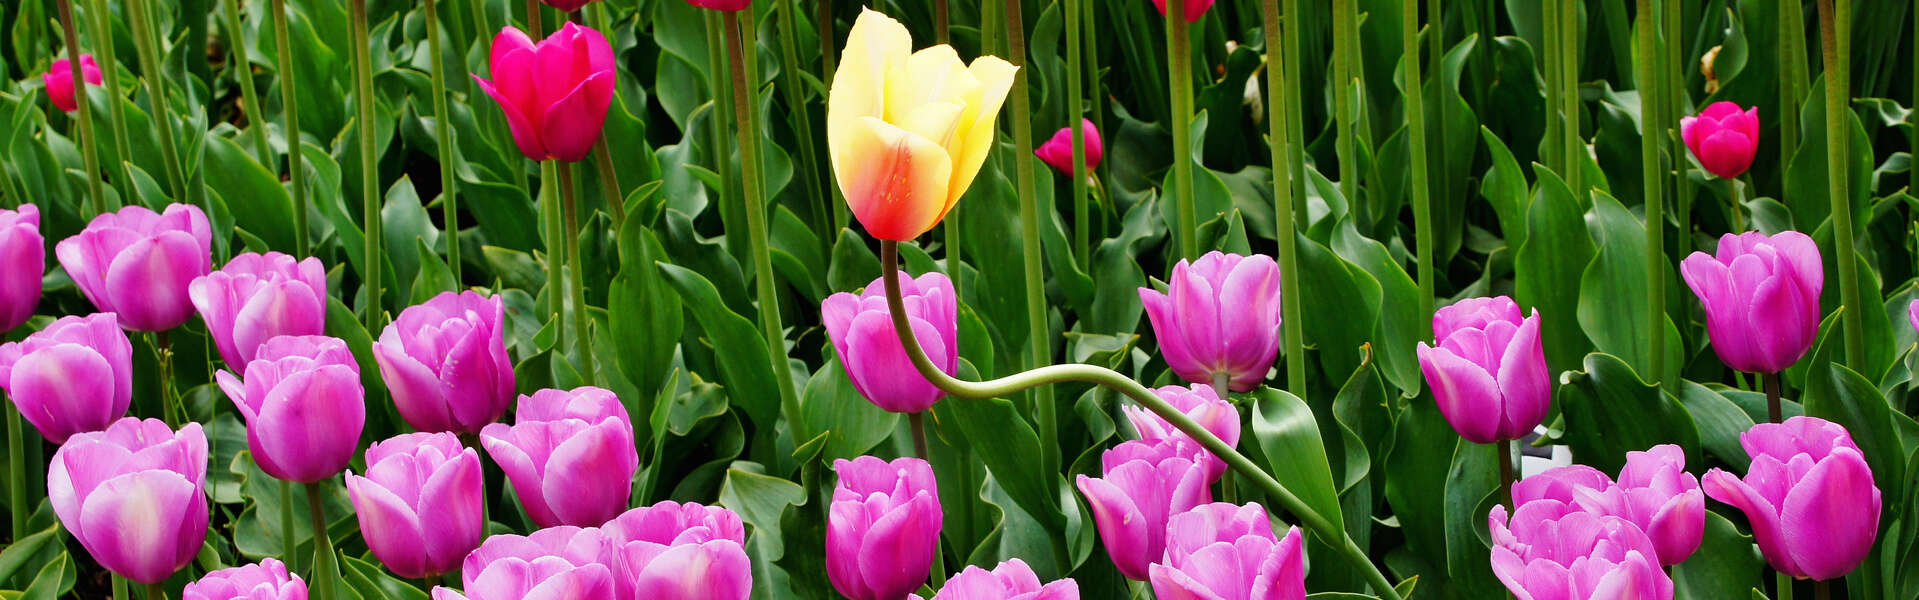 Standout flower picture